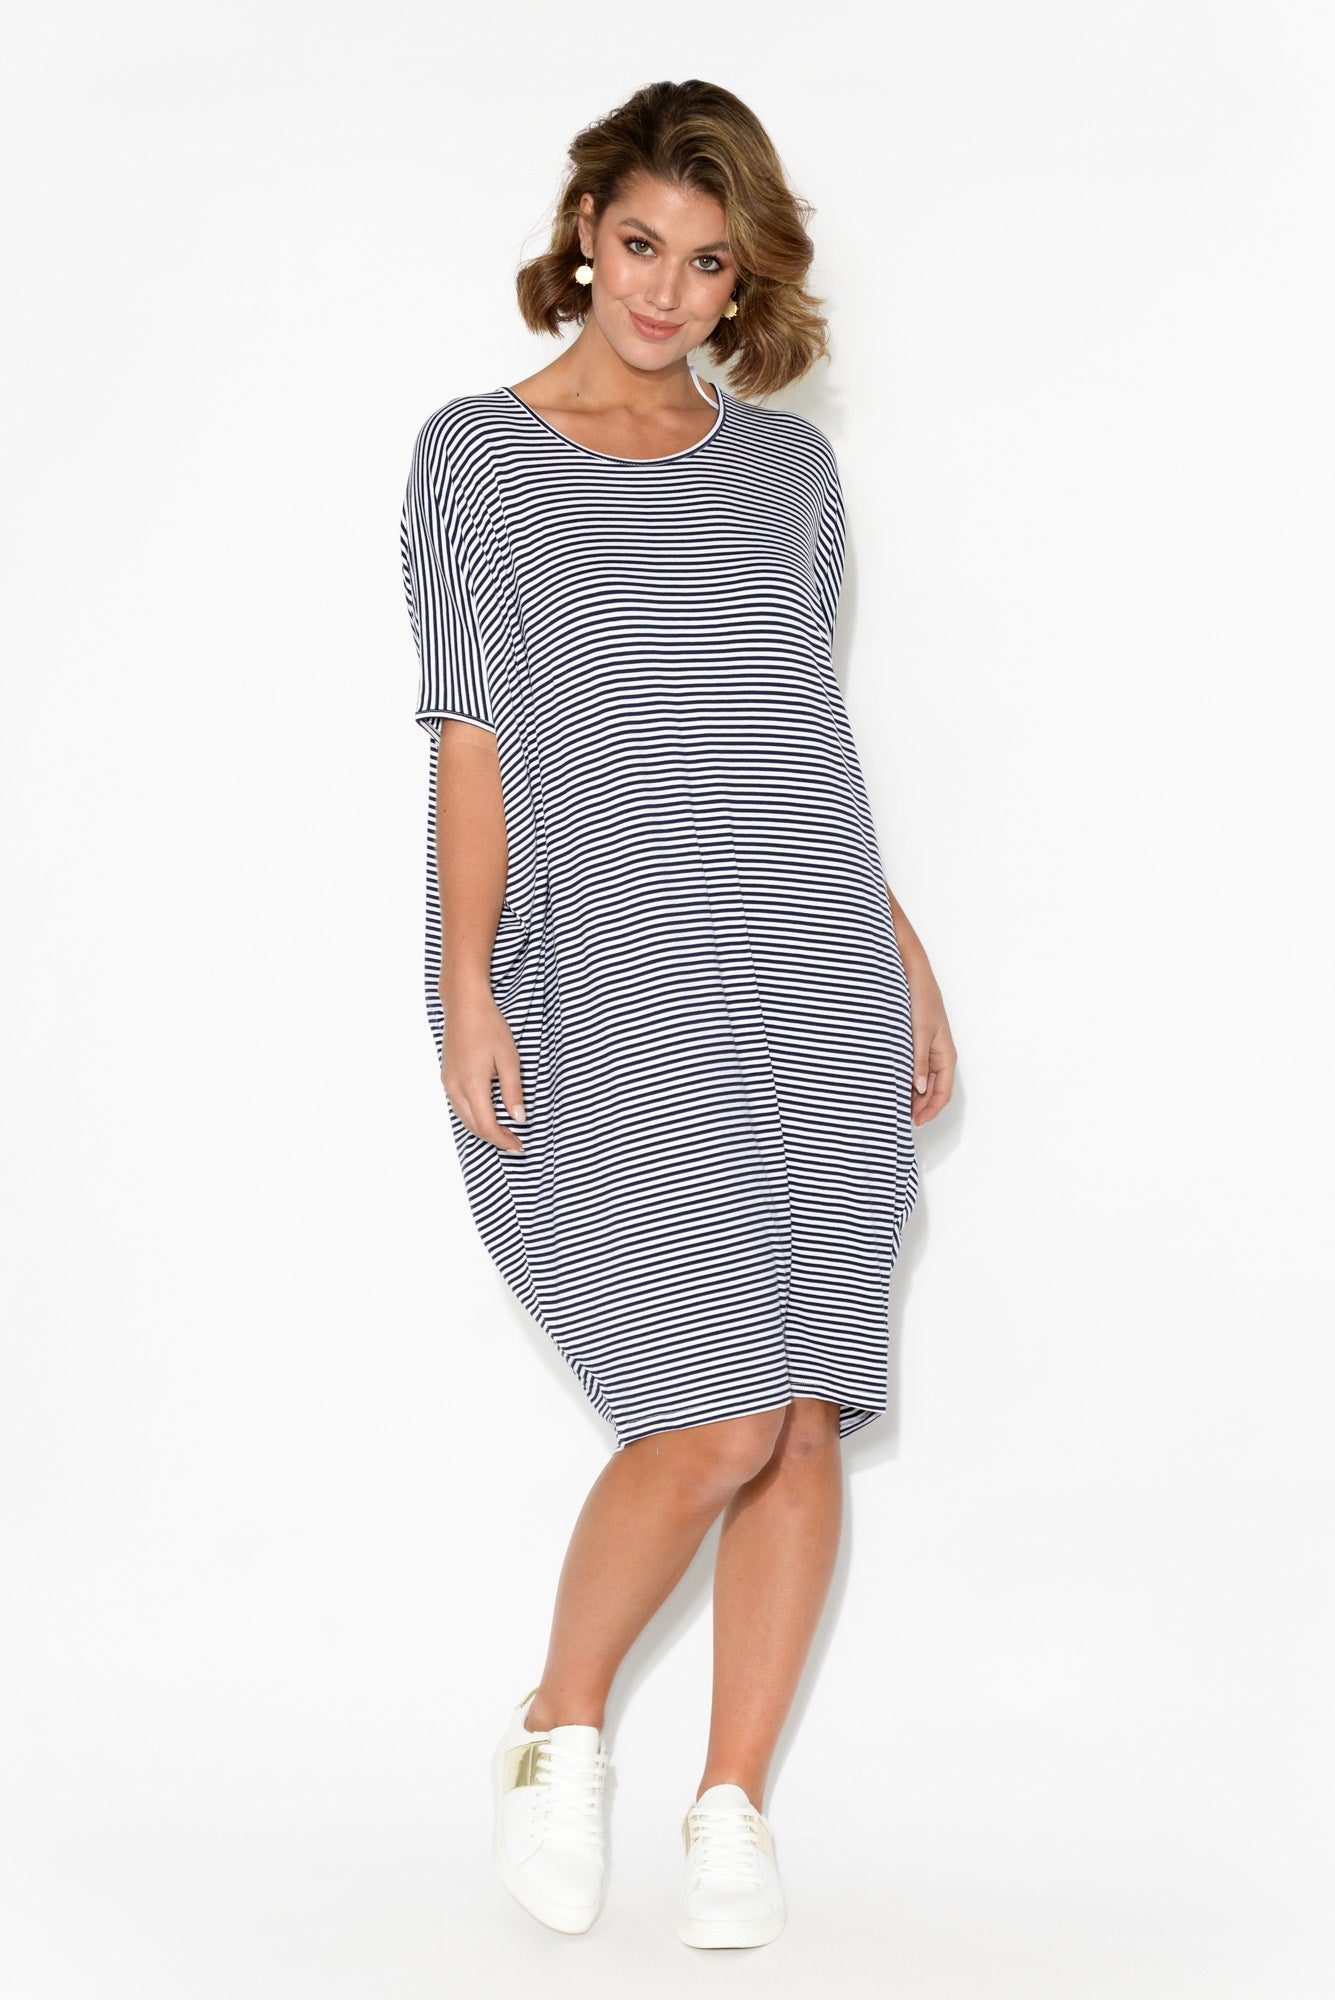 Navy and White Stripe Maui Dress